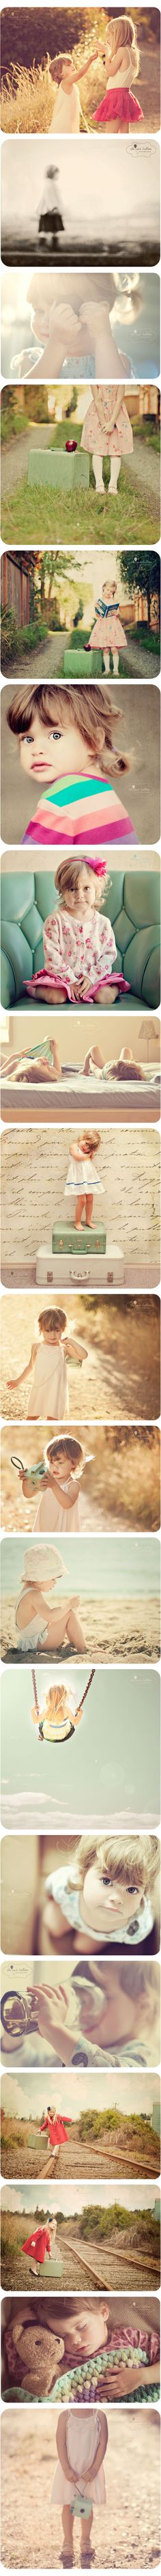 Pretty 'vintage look' children's photography - adorable! Balloons Photography, Children Photography, Family Photography, Photography Tips, Portrait Photography, Cute Photos, Pretty Pictures, Kid Pictures, Kid Pics